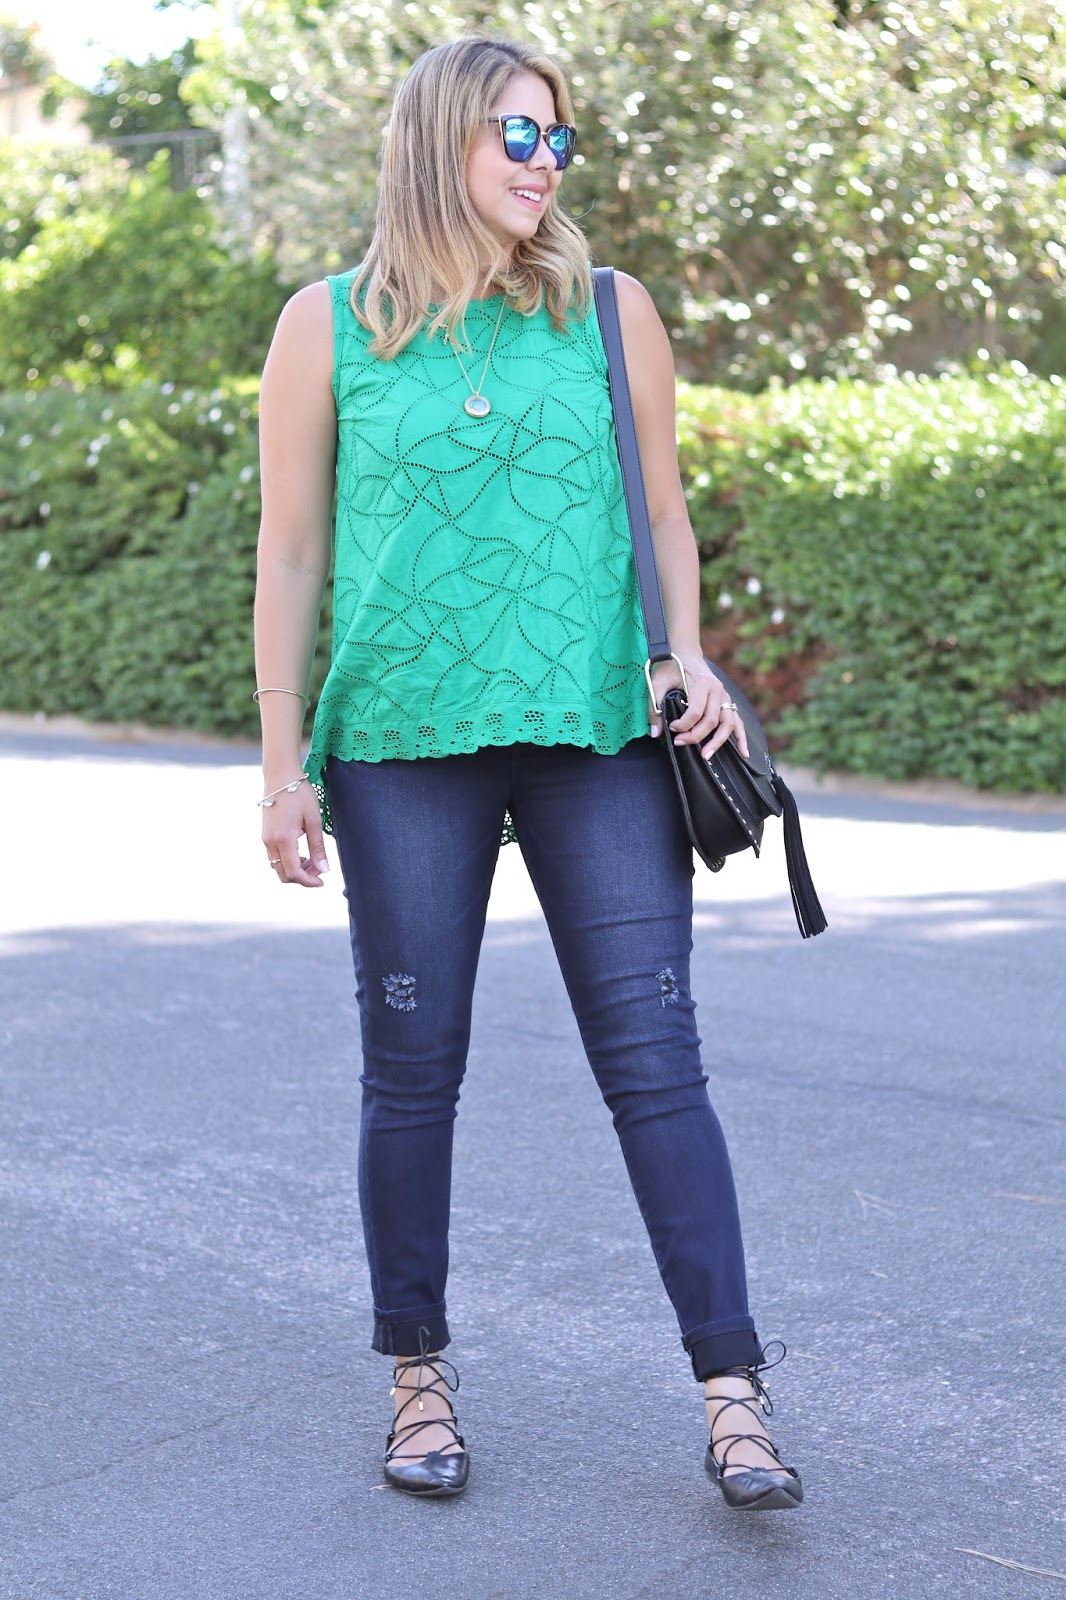 skinny jeans outfit, green top with jeans, cute casual outfit for summer, casual stylish outfit 2016